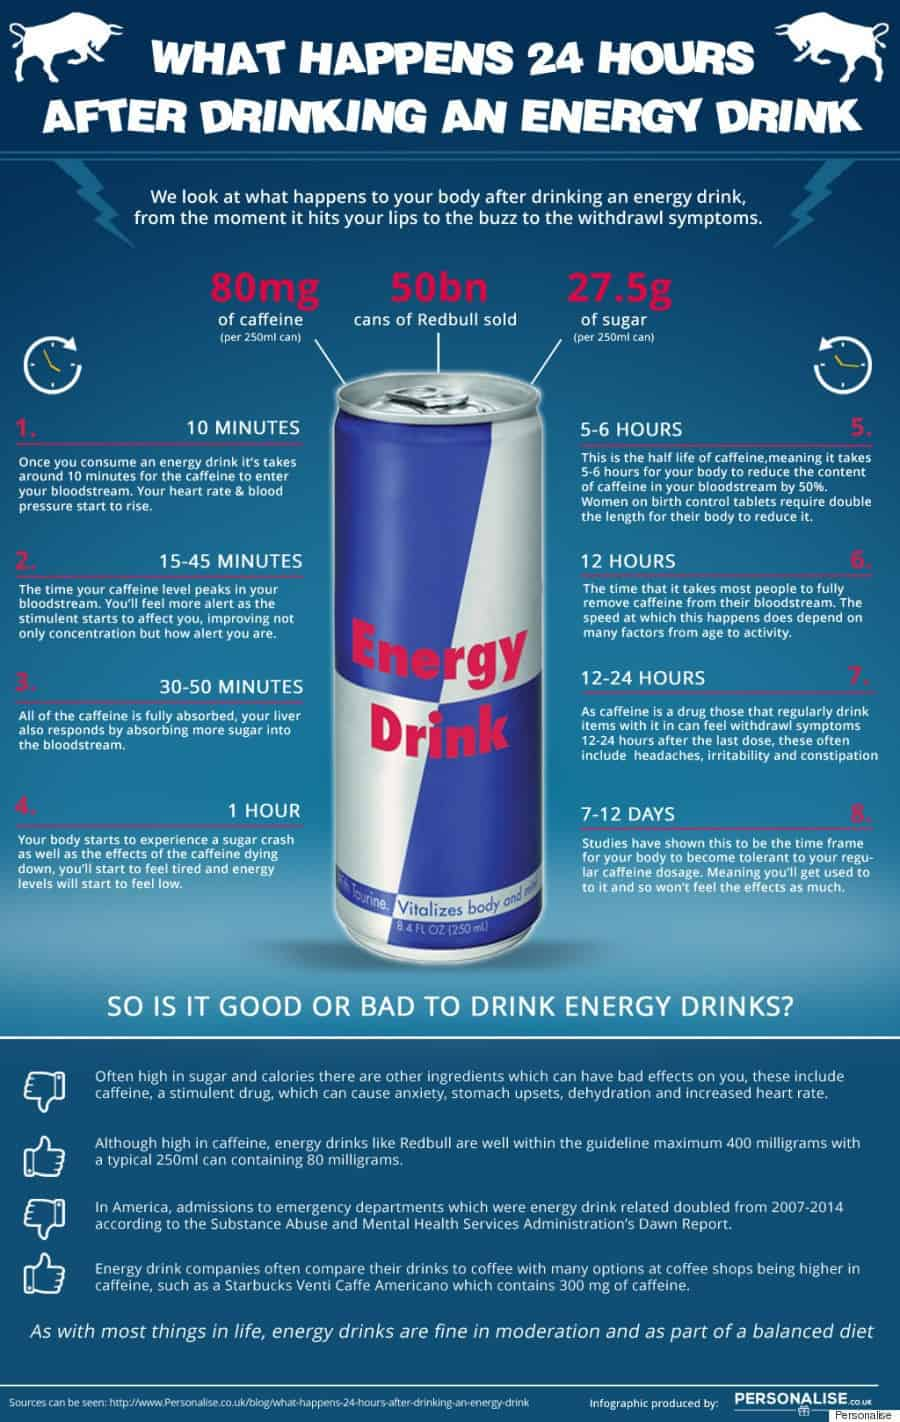 What Happens 24 Hours After Drinking An Energy Drink [Infographic]